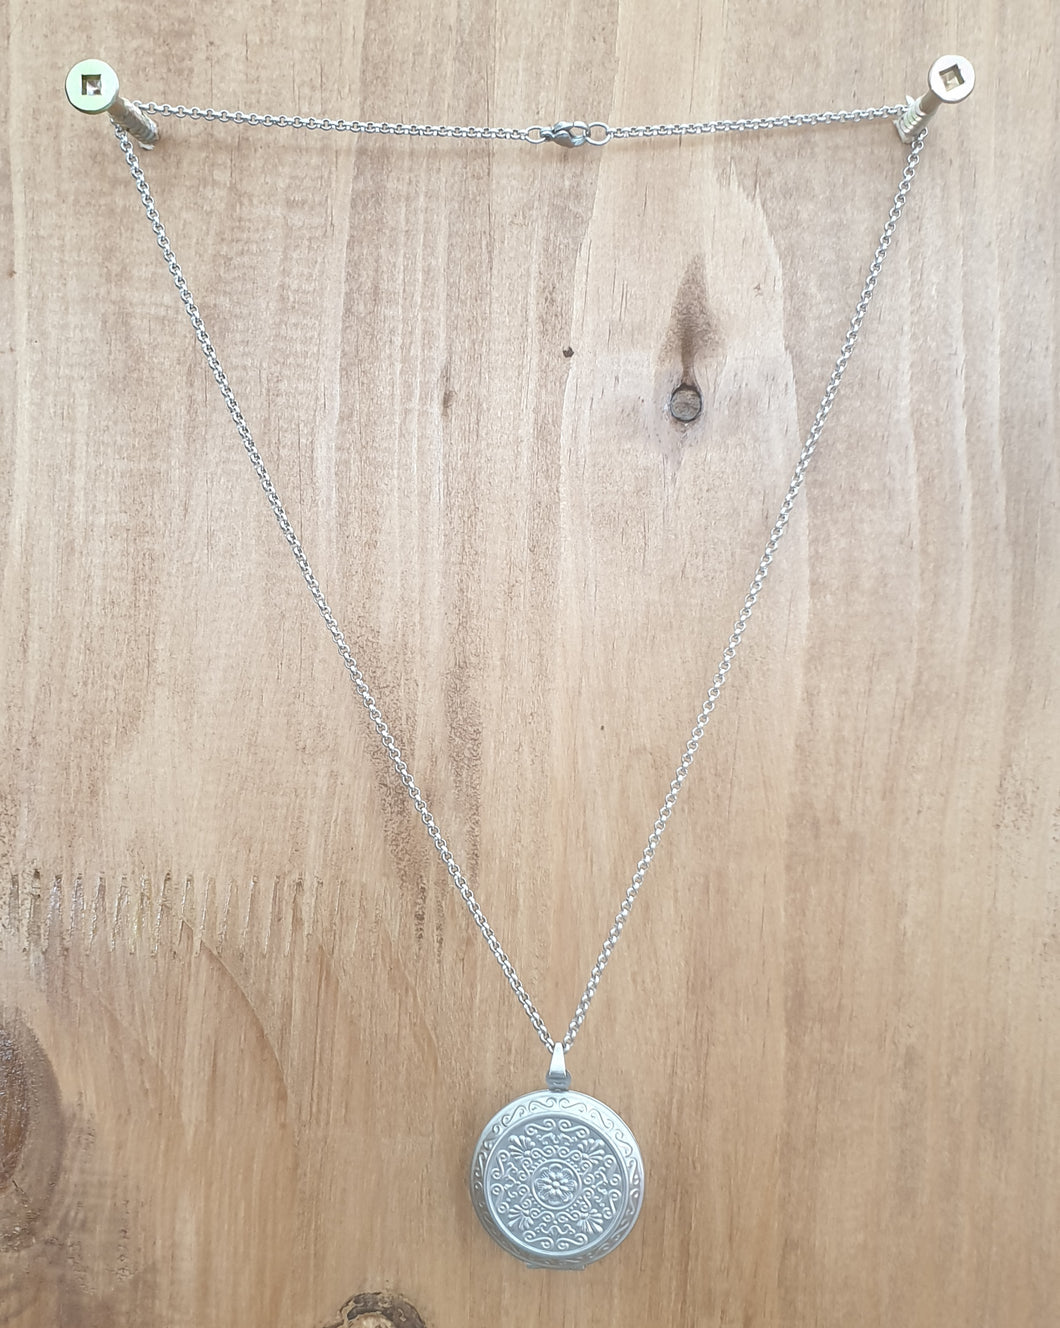 Round Pendant Stainless Steel Necklace